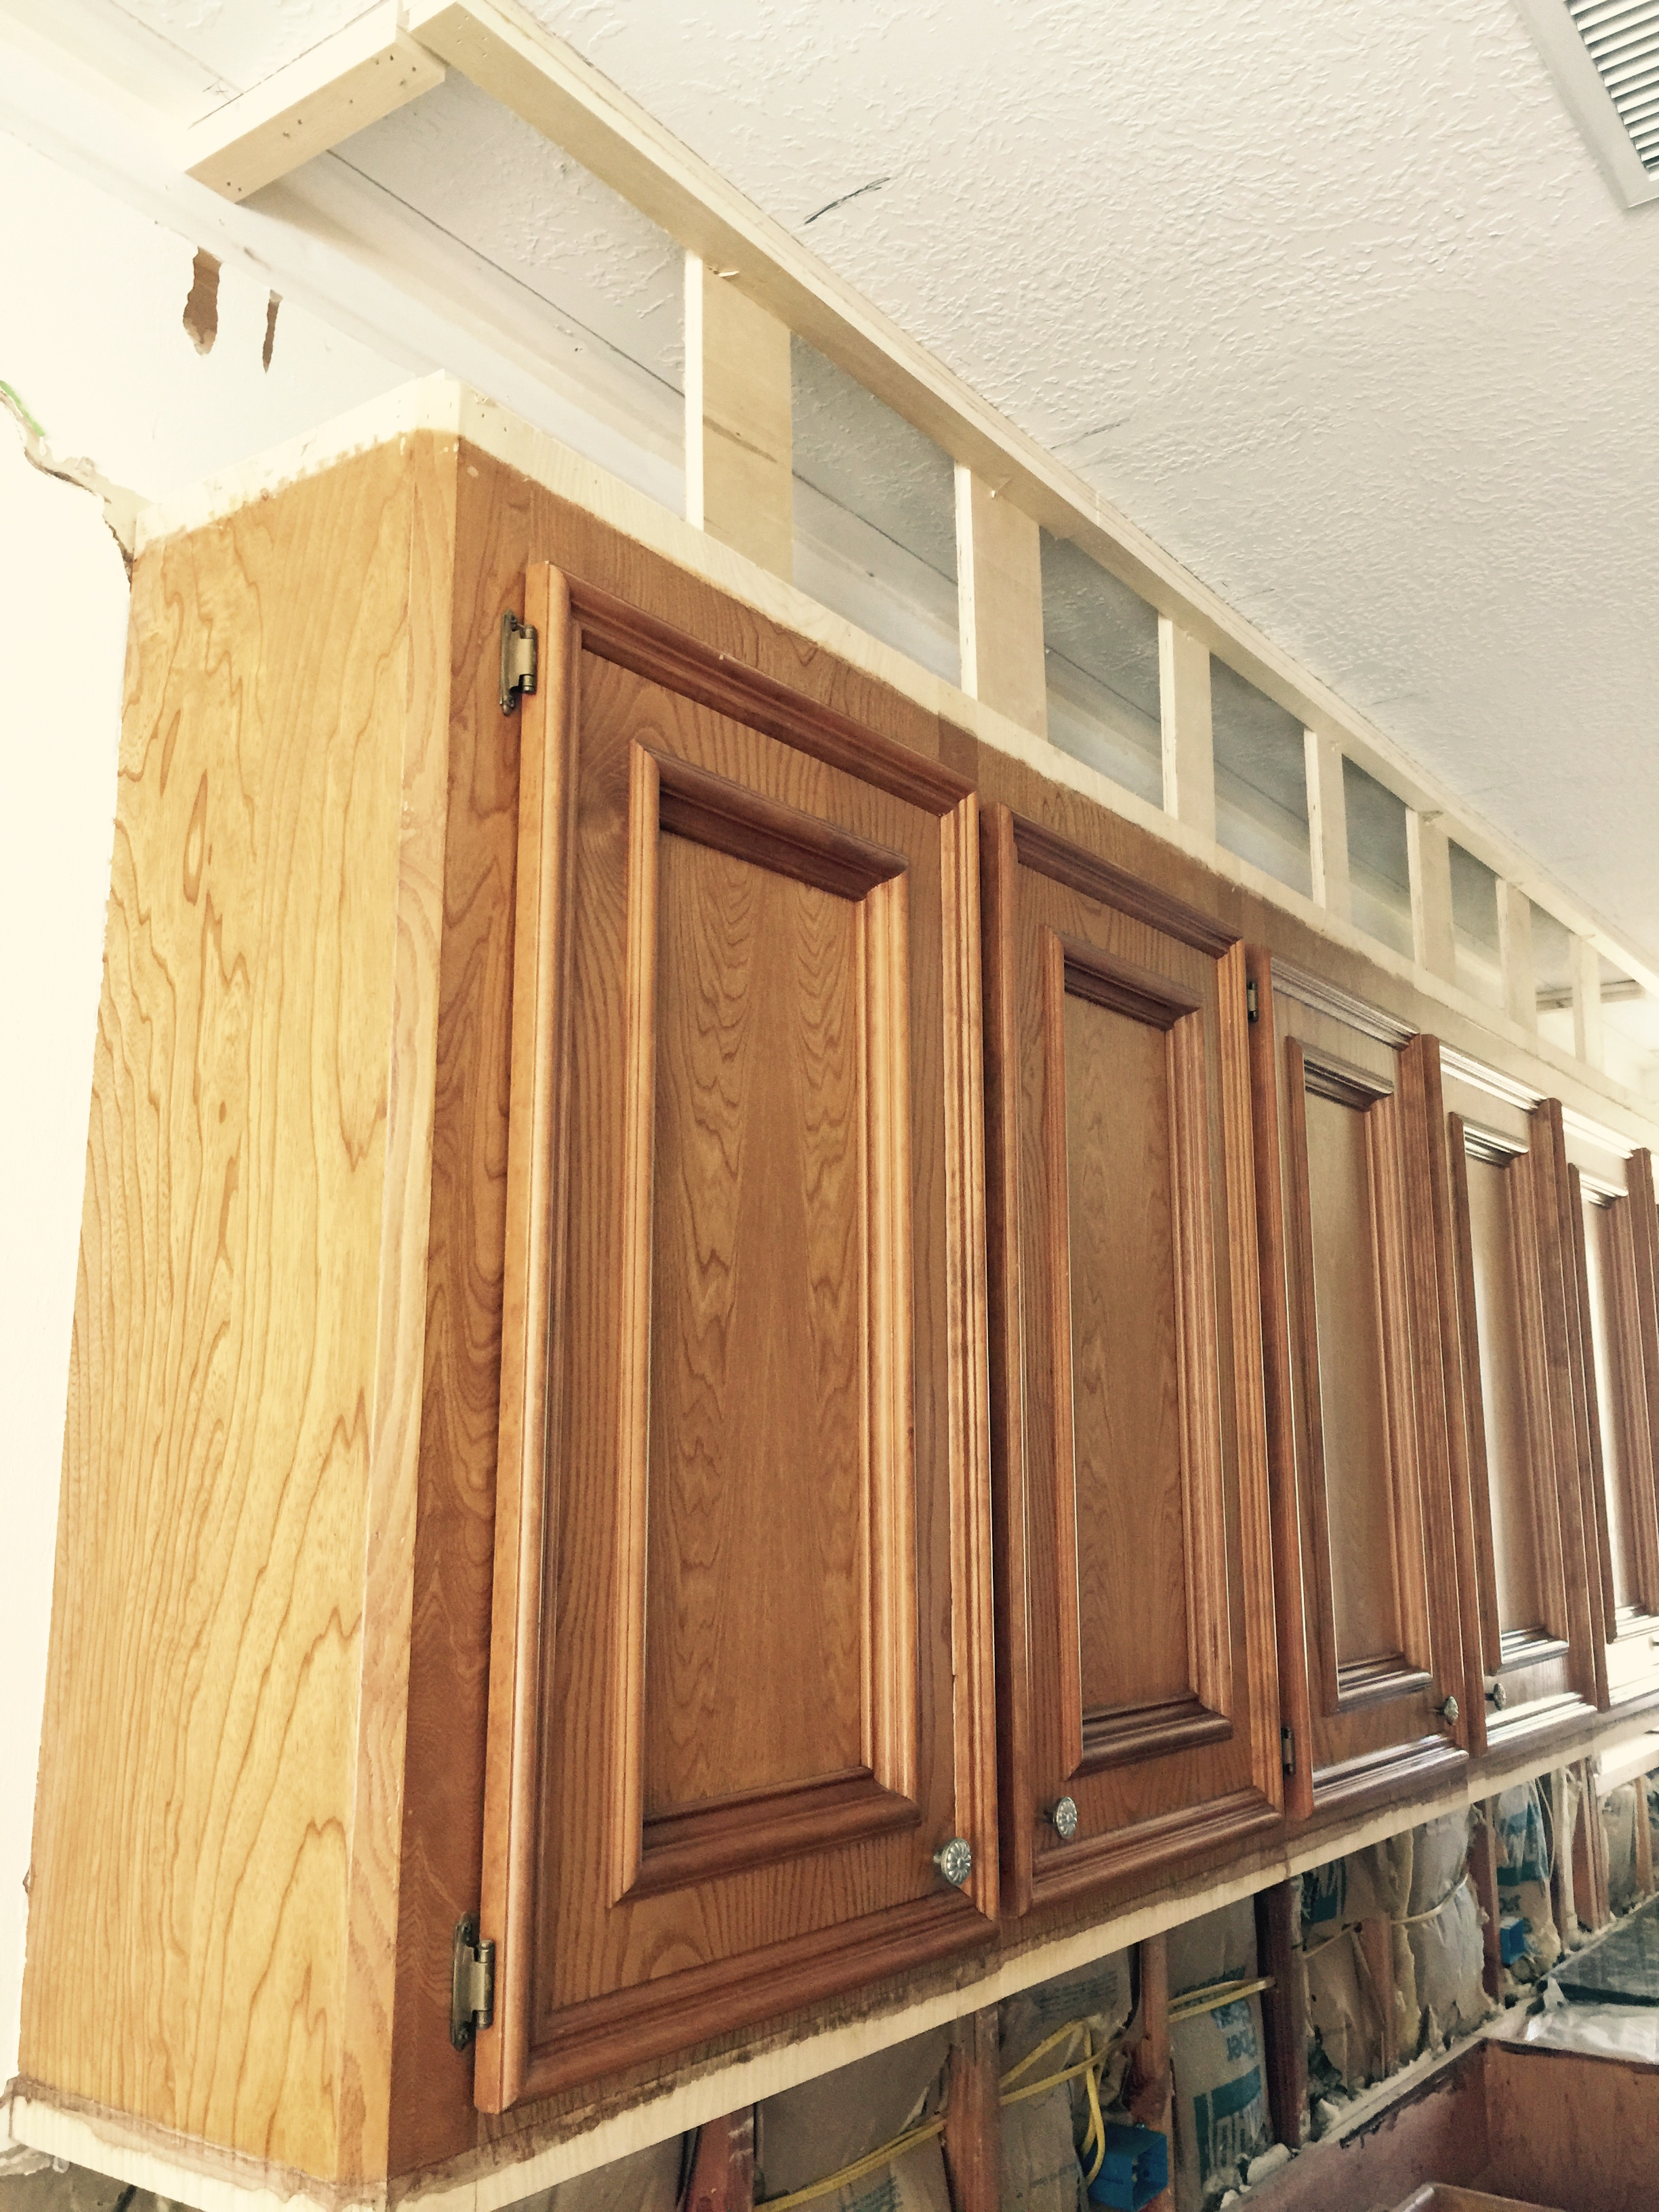 how to make kitchen cabinets big lots appliances ugly look great designed under construction